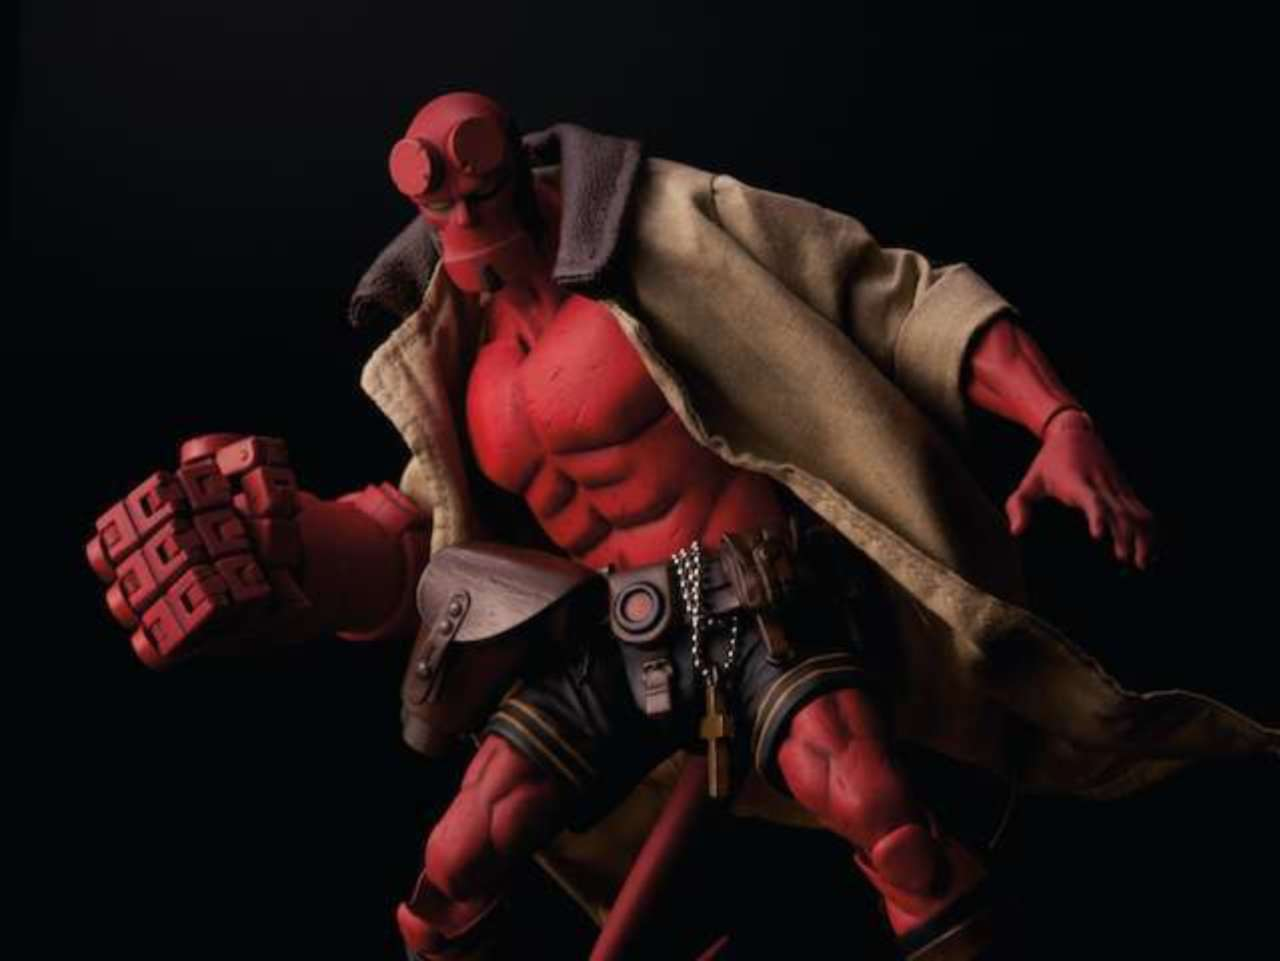 Get Your First Look At The Hellboy Action Figure Debuting At Sdcc